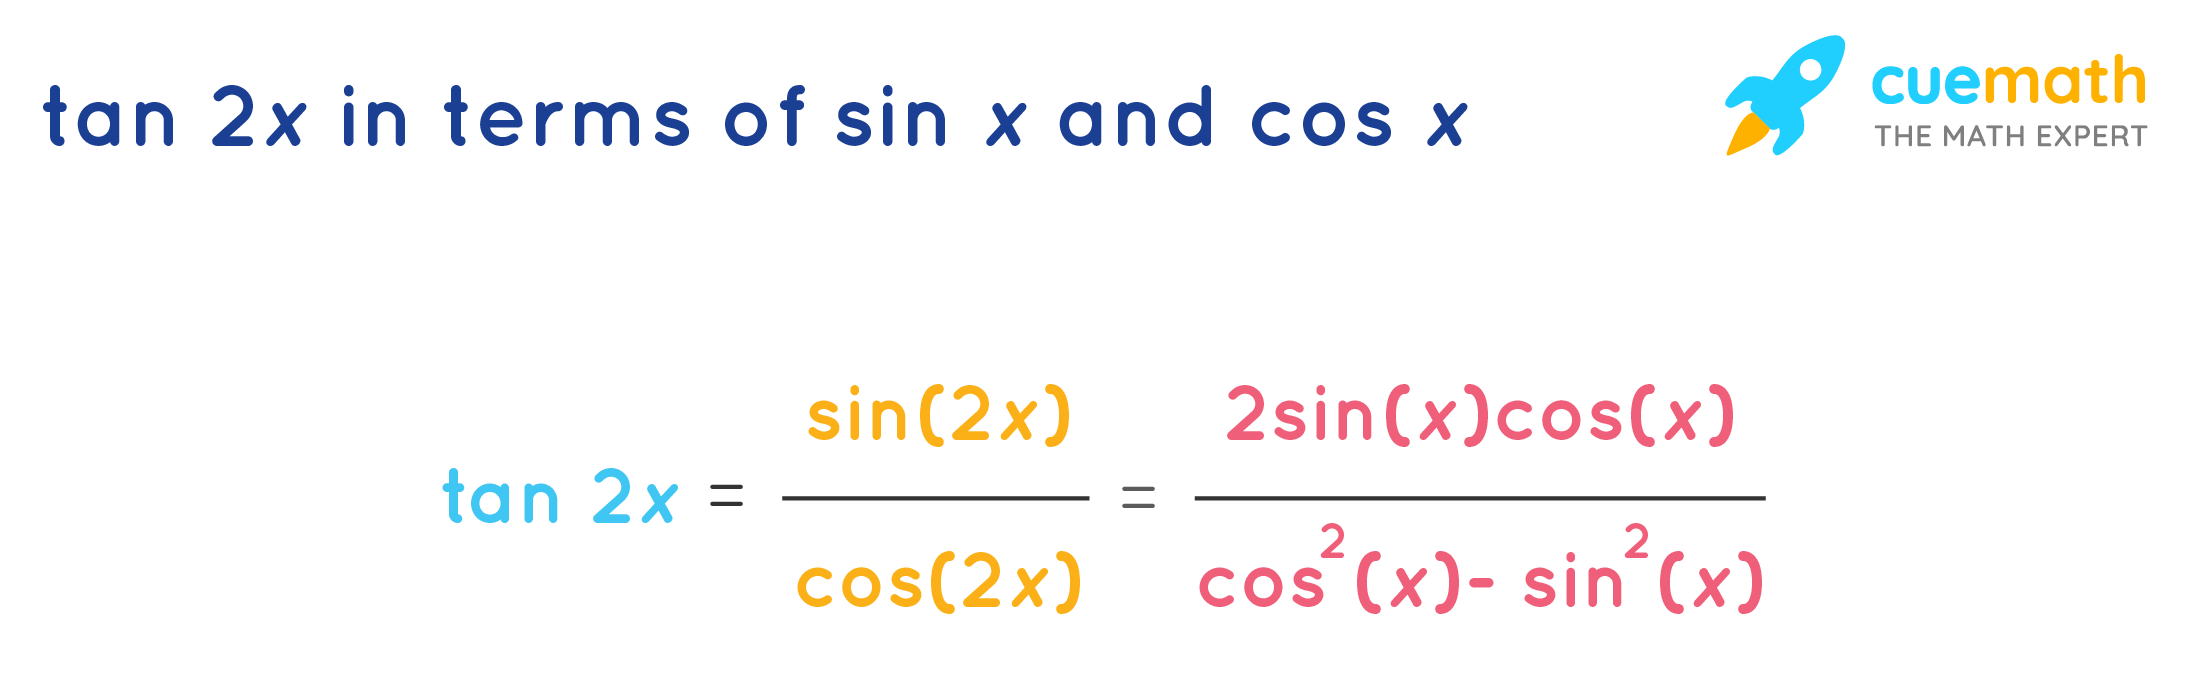 tan2x formula in terms of sin and cos